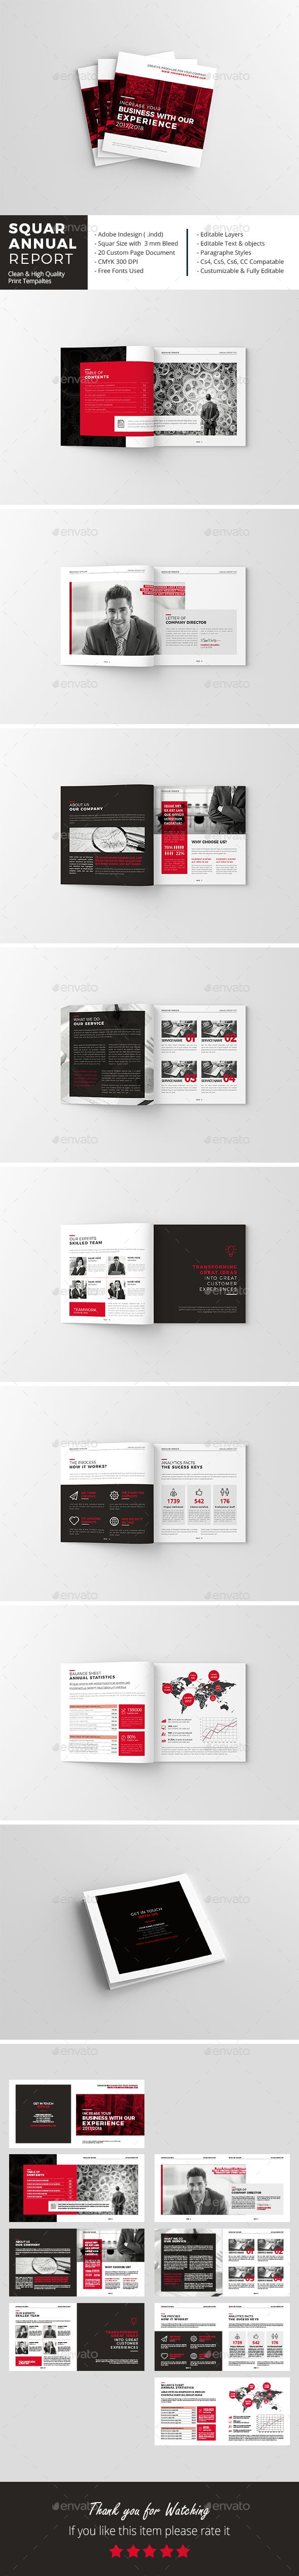 Squar Annual Report Brochure Template InDesign INDD - 16 Pages